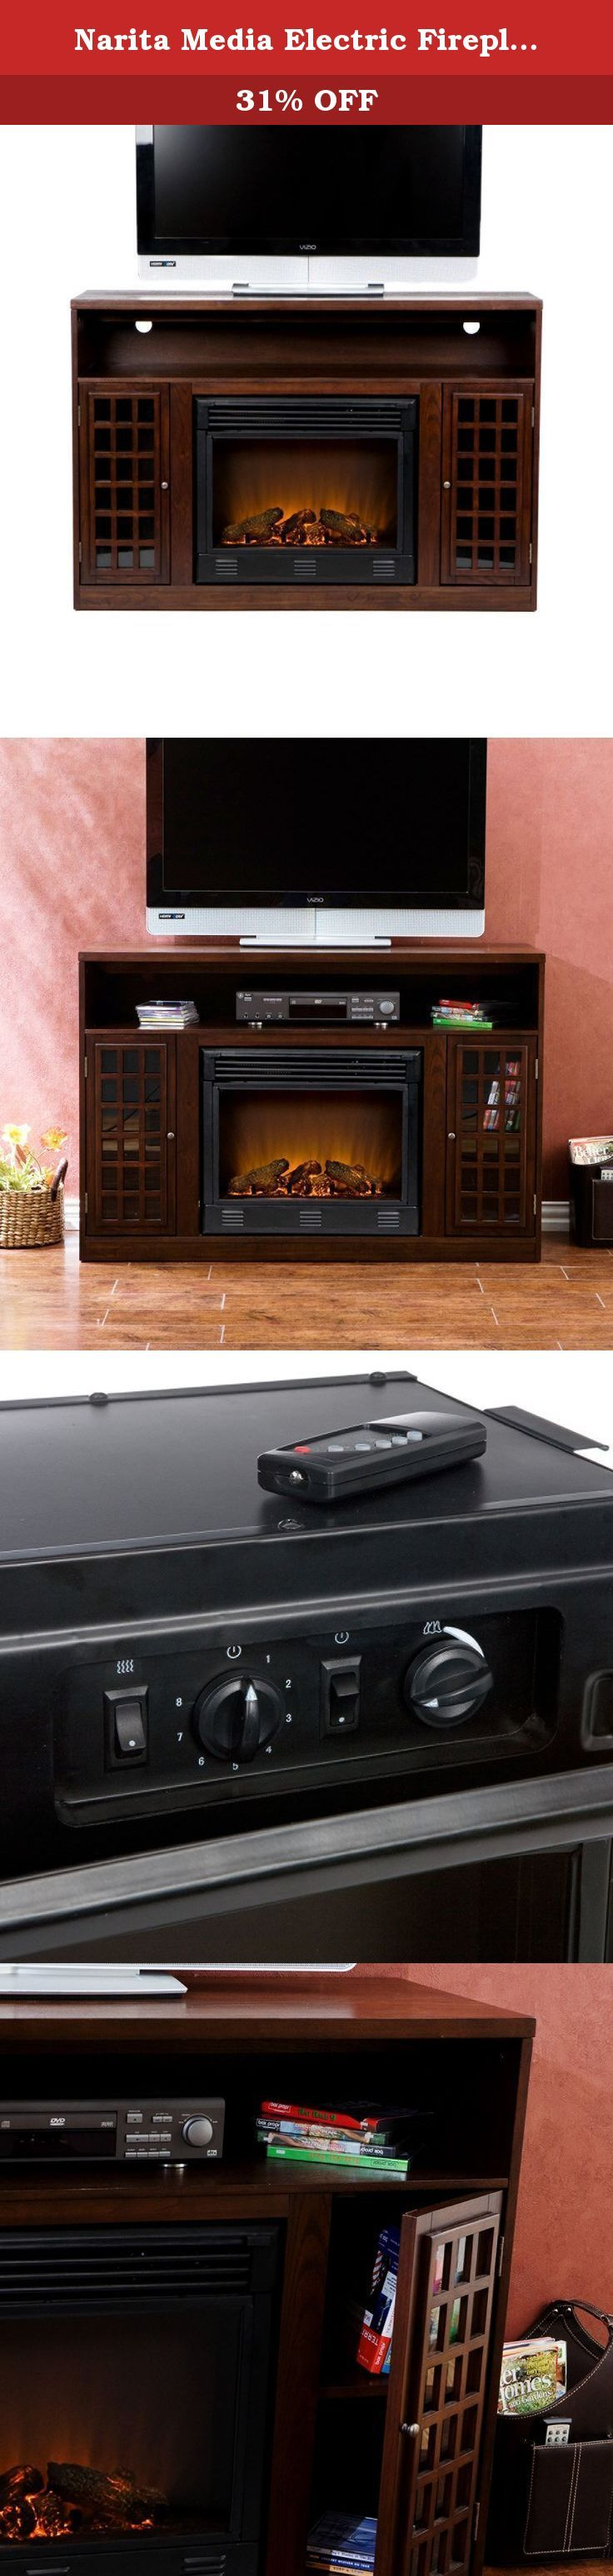 Narita Media Electric Fireplace - Espresso. Solid lines and distinct Asian style make this media console & fireplace a sought-after home design accent. Sturdy mantel can support your electronic equipment with ease. Crafted from fine hardwoods, it has an espresso finish for casual style and relaxed character. Mantel supports up to 85 lbs.. Remote control (2 AAA Batteries Required). Ideal for up to 50 in. flat screen television. One adjustable shelf in each cabinet. Perfect for any room....